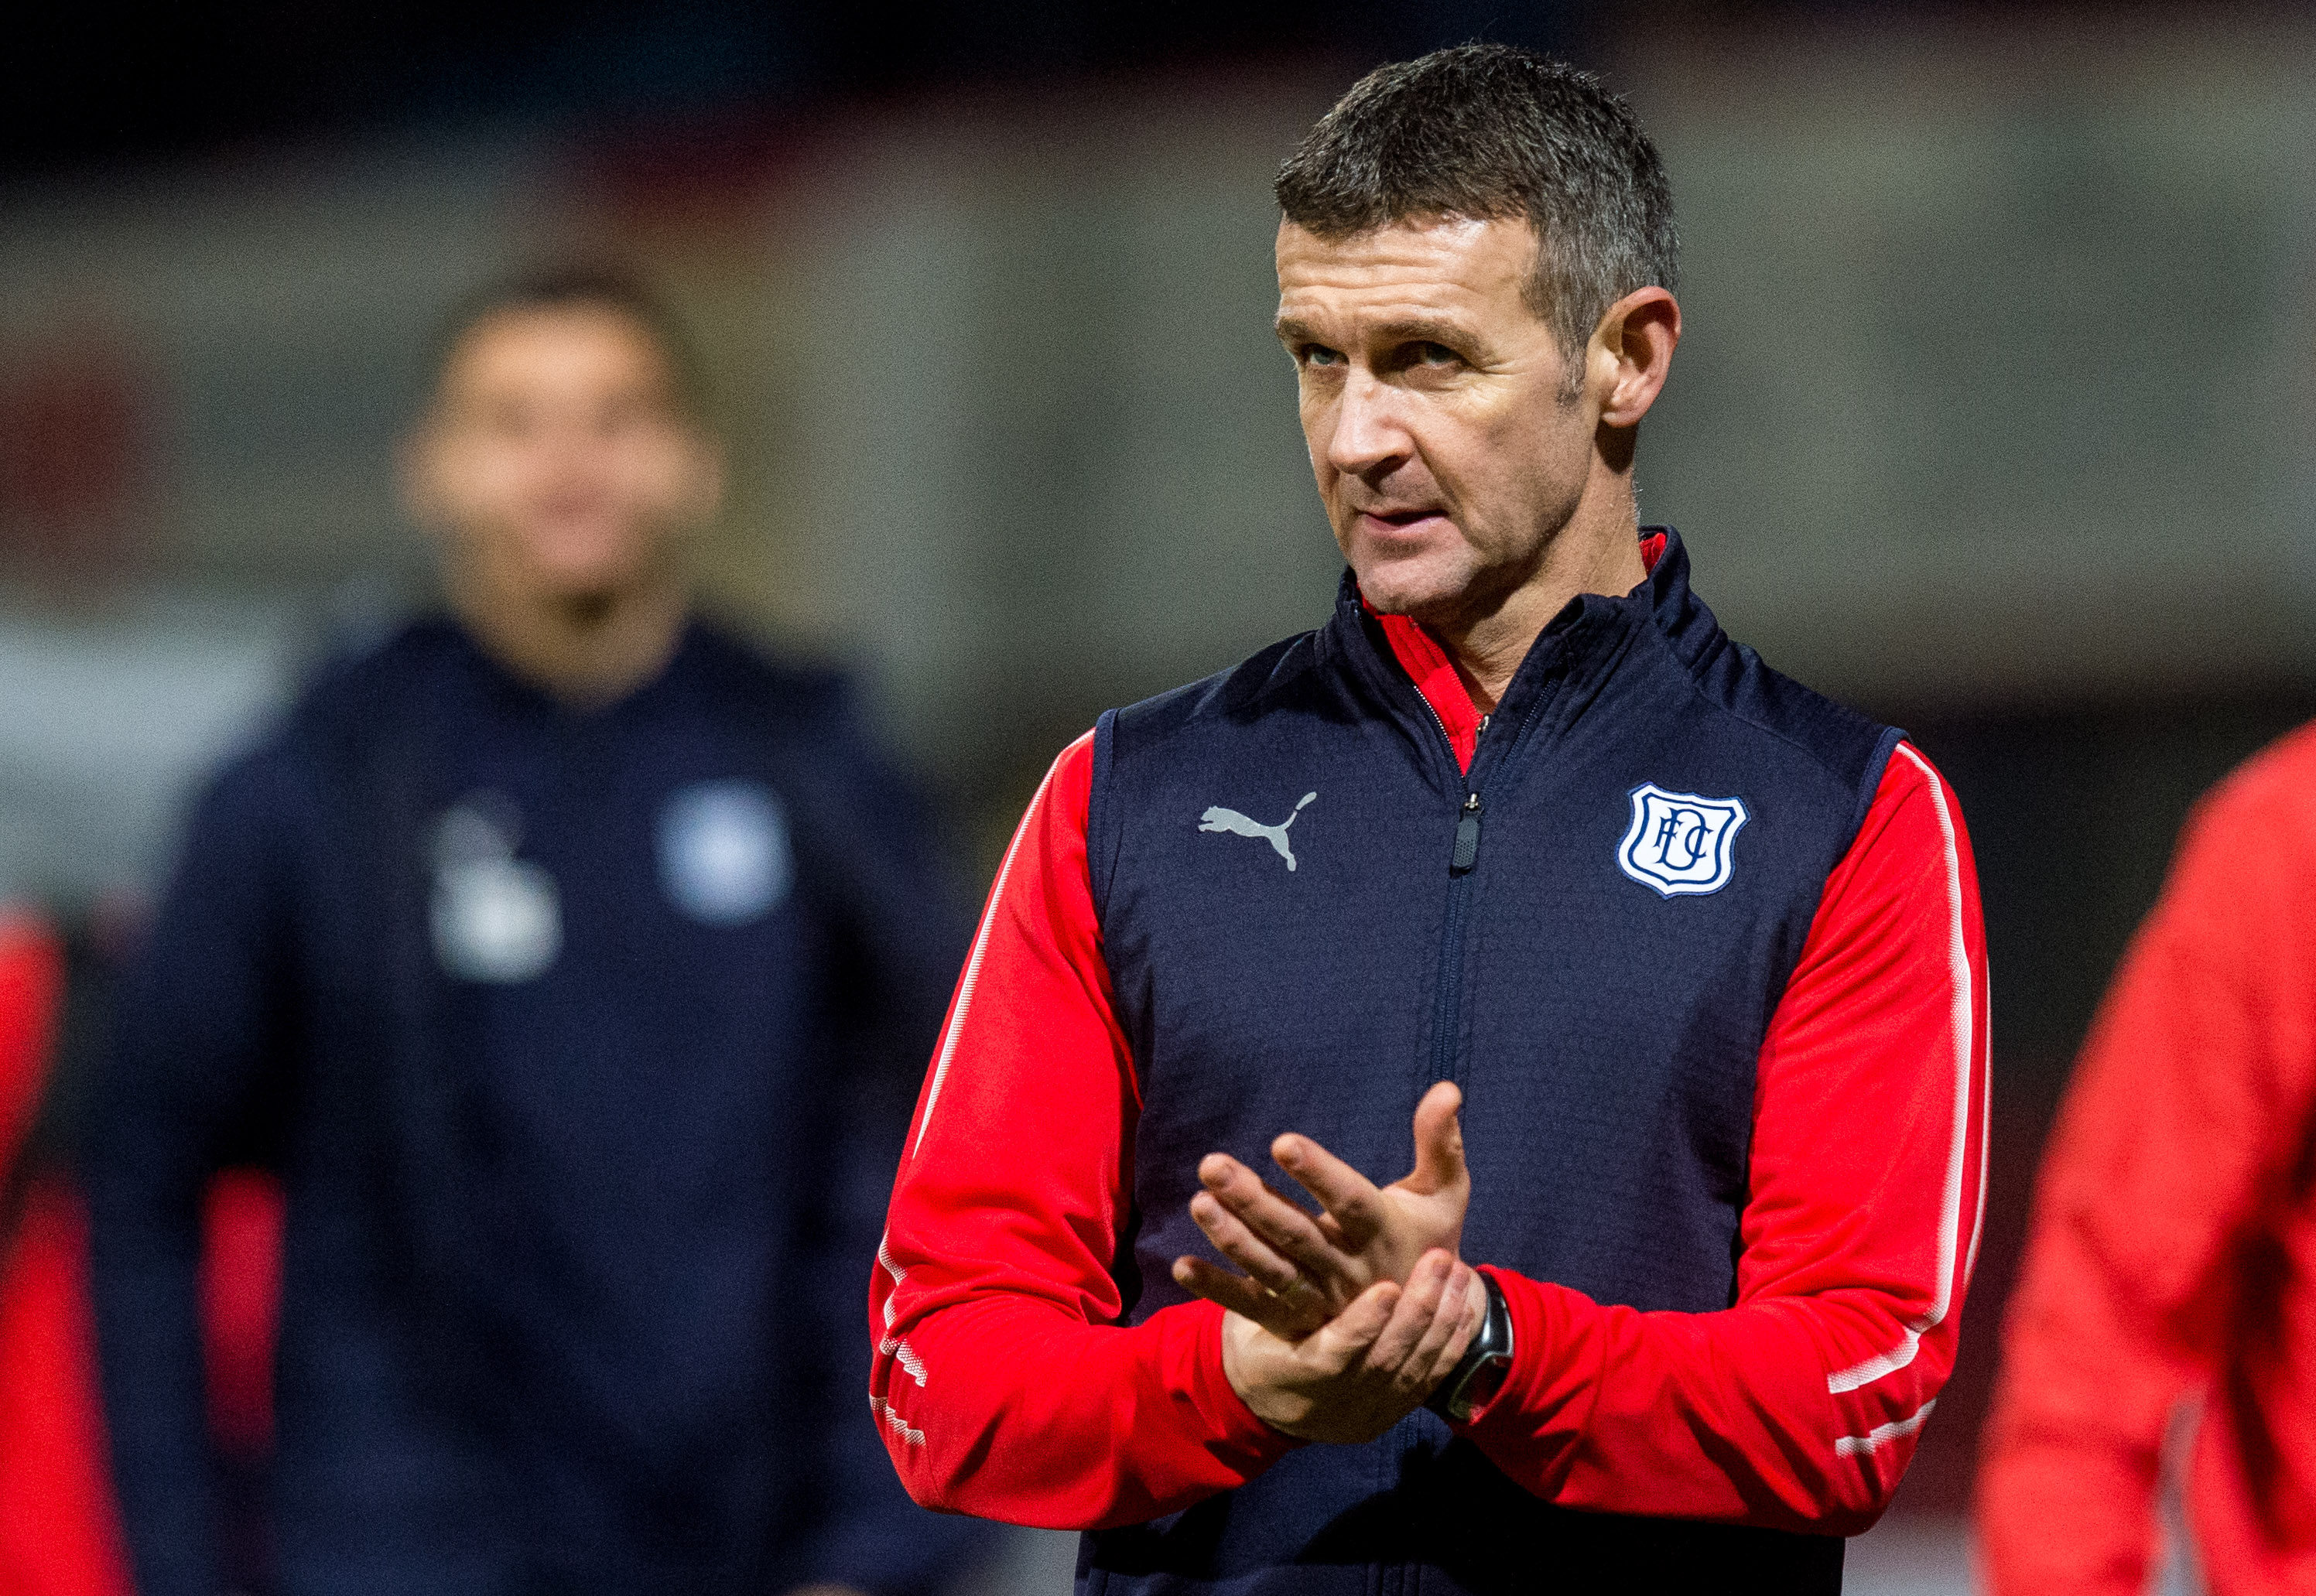 Dundee manager Jim McIntyre at full-time against Livingston.